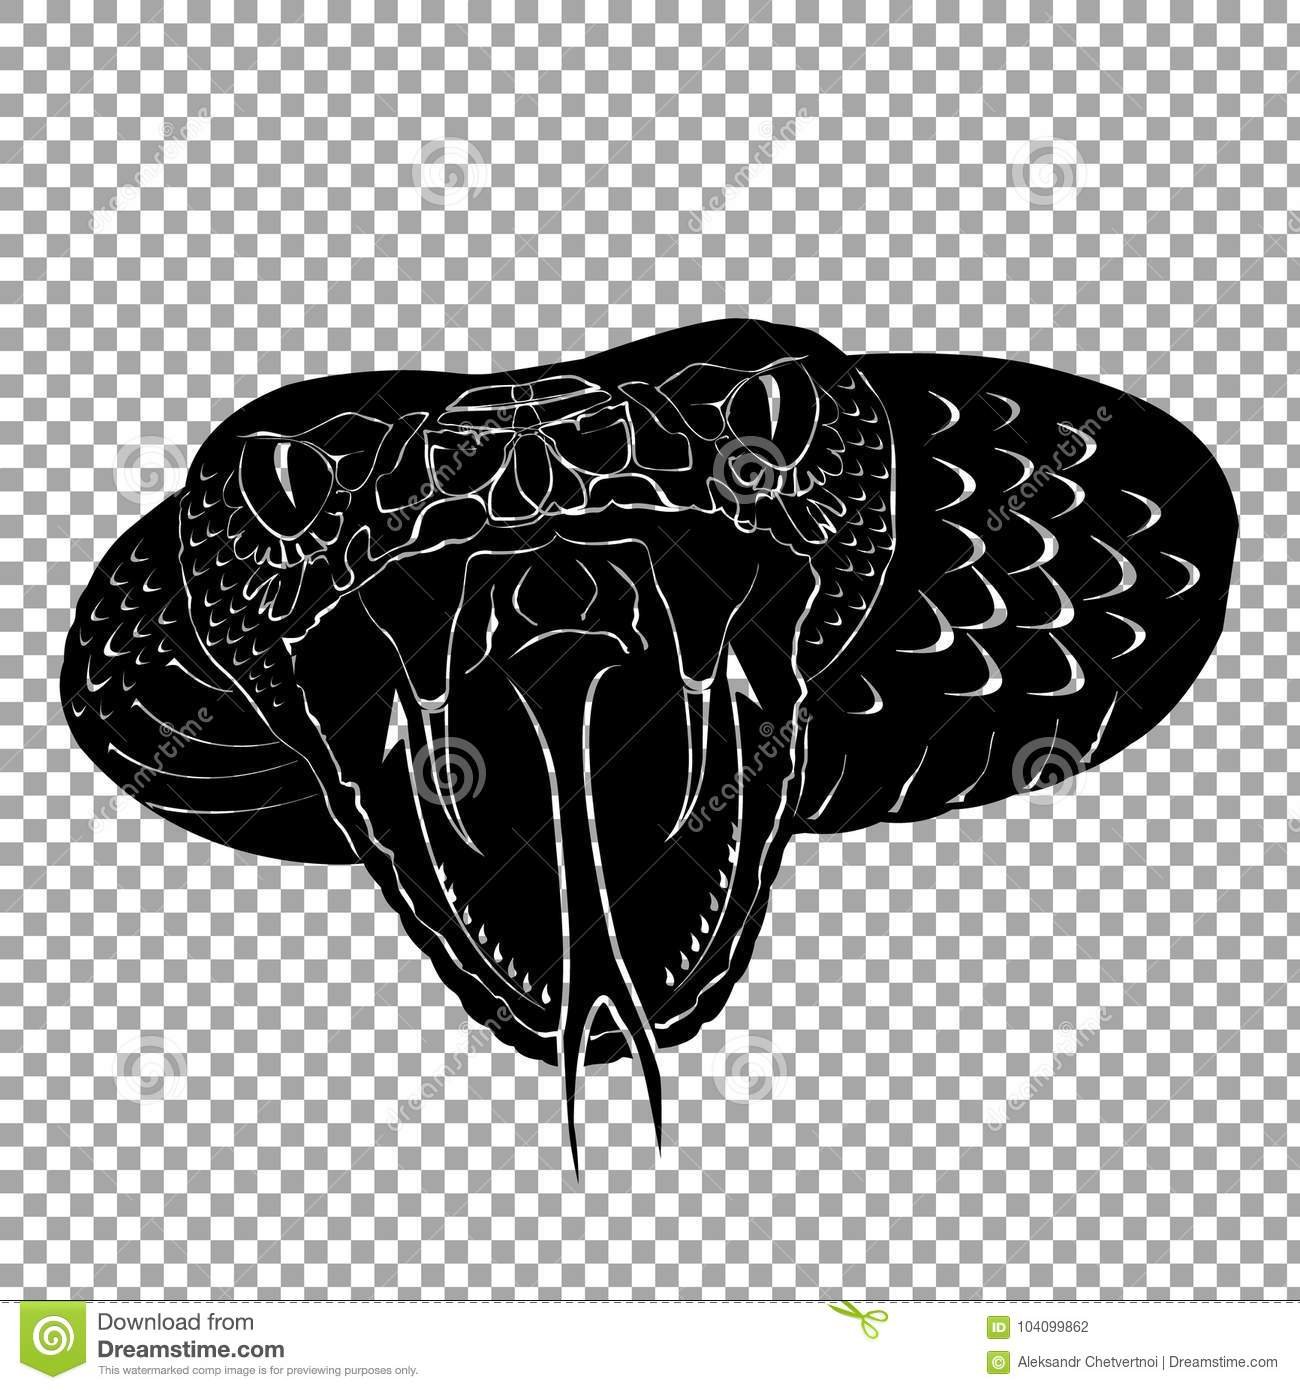 Silhouette Snake Cobra Tattoo Isolate On Transparent Background Symbol Of The Medicine Black Icon